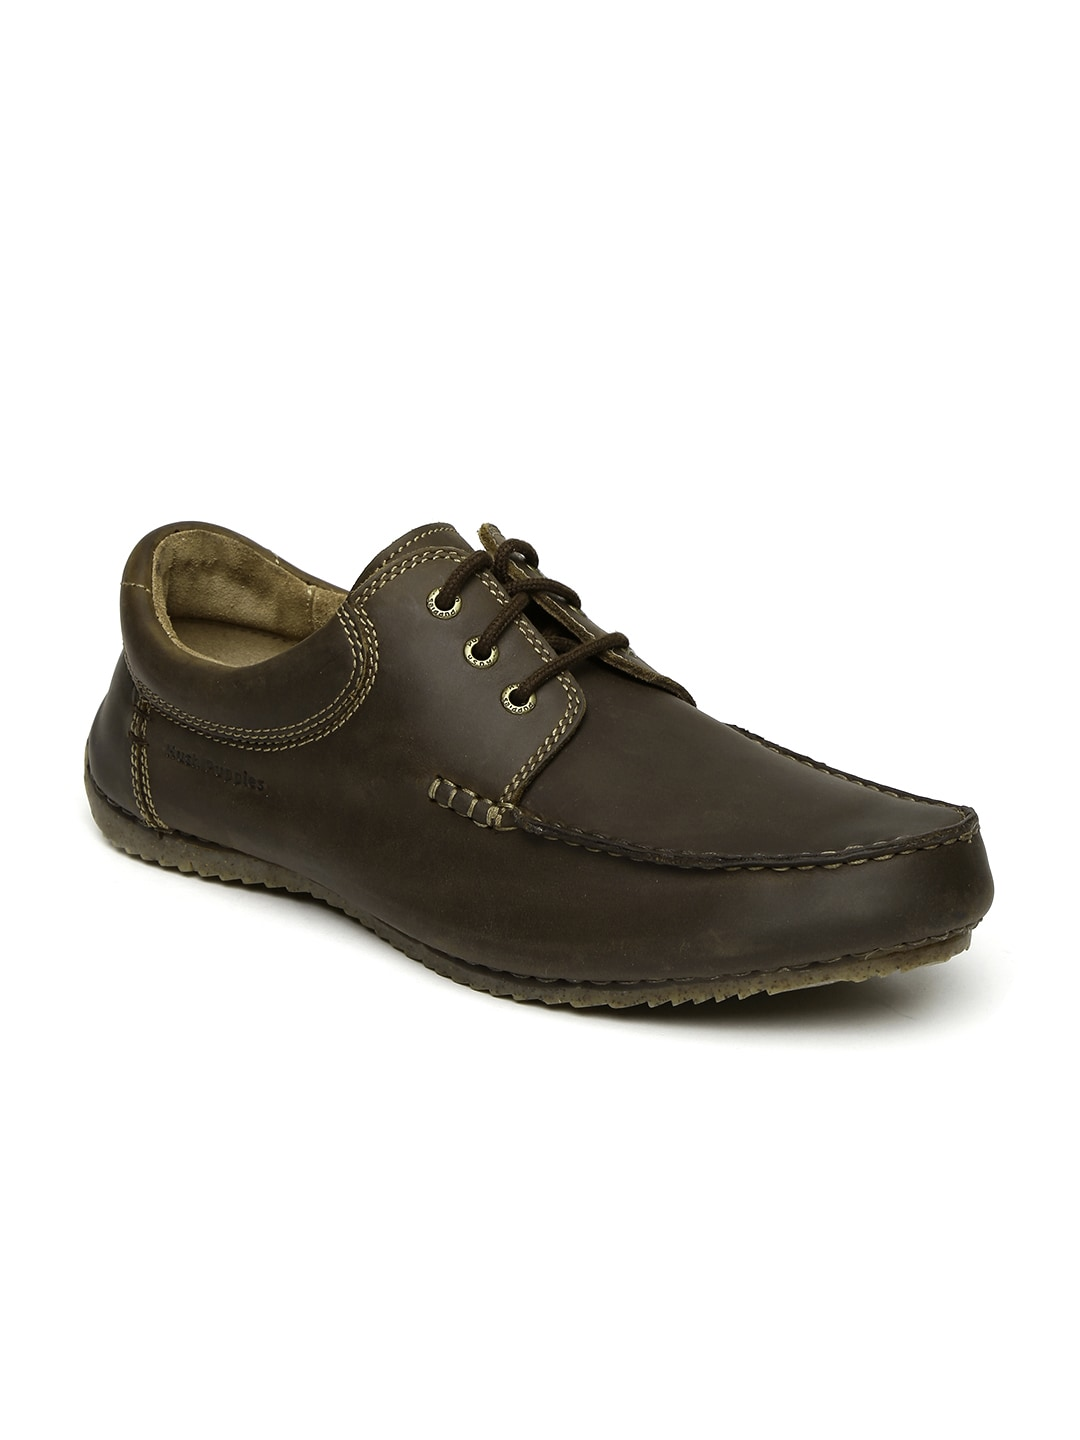 Hush Puppies Men Brown Leather Derbys image